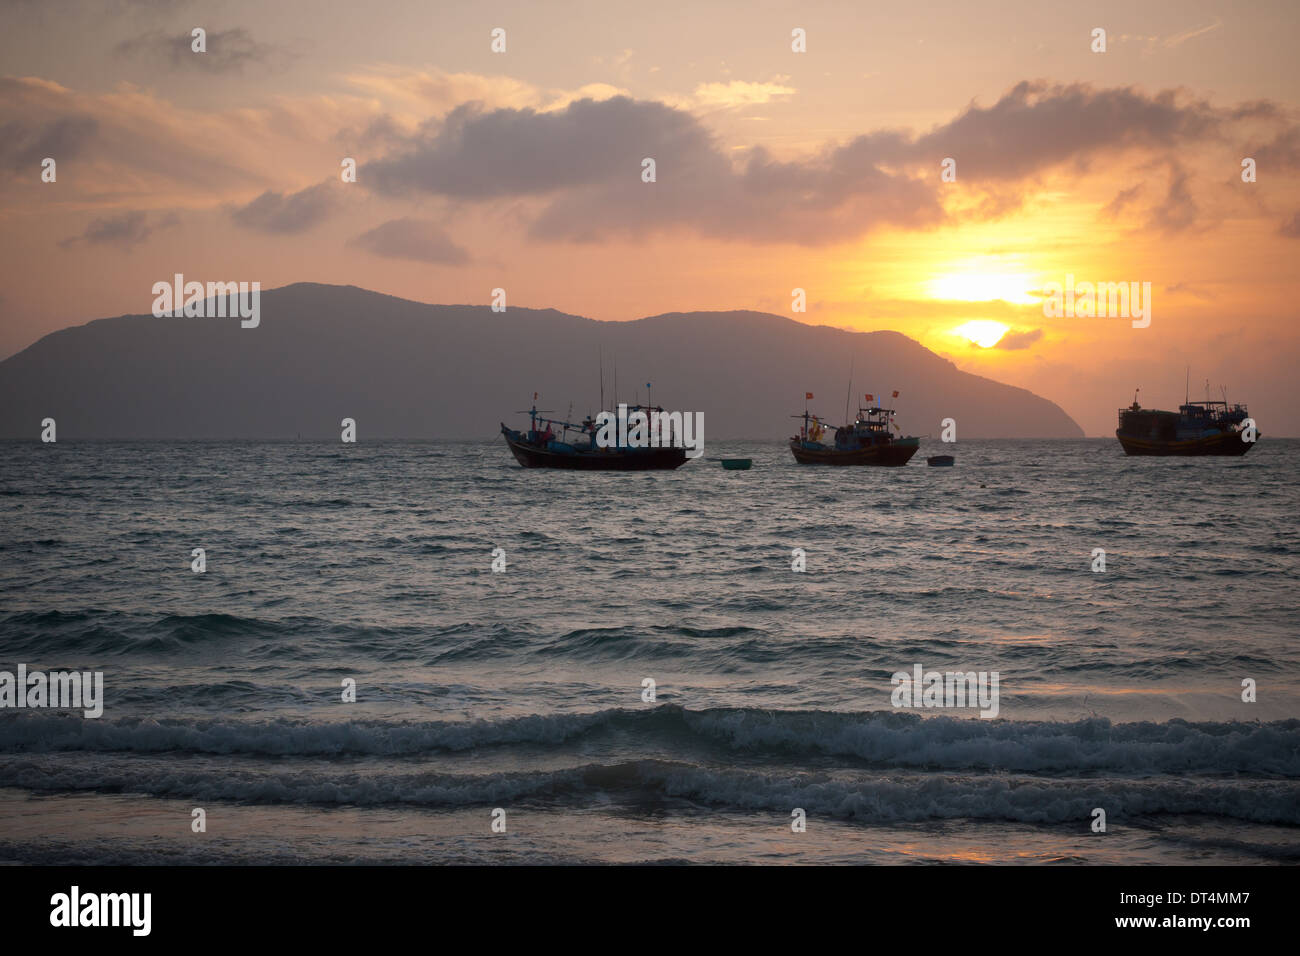 Sunrise over the Con Dao Islands, Vietnam, as seen from Con Son Island.  Bay Canh Island is in the distance. - Stock Image